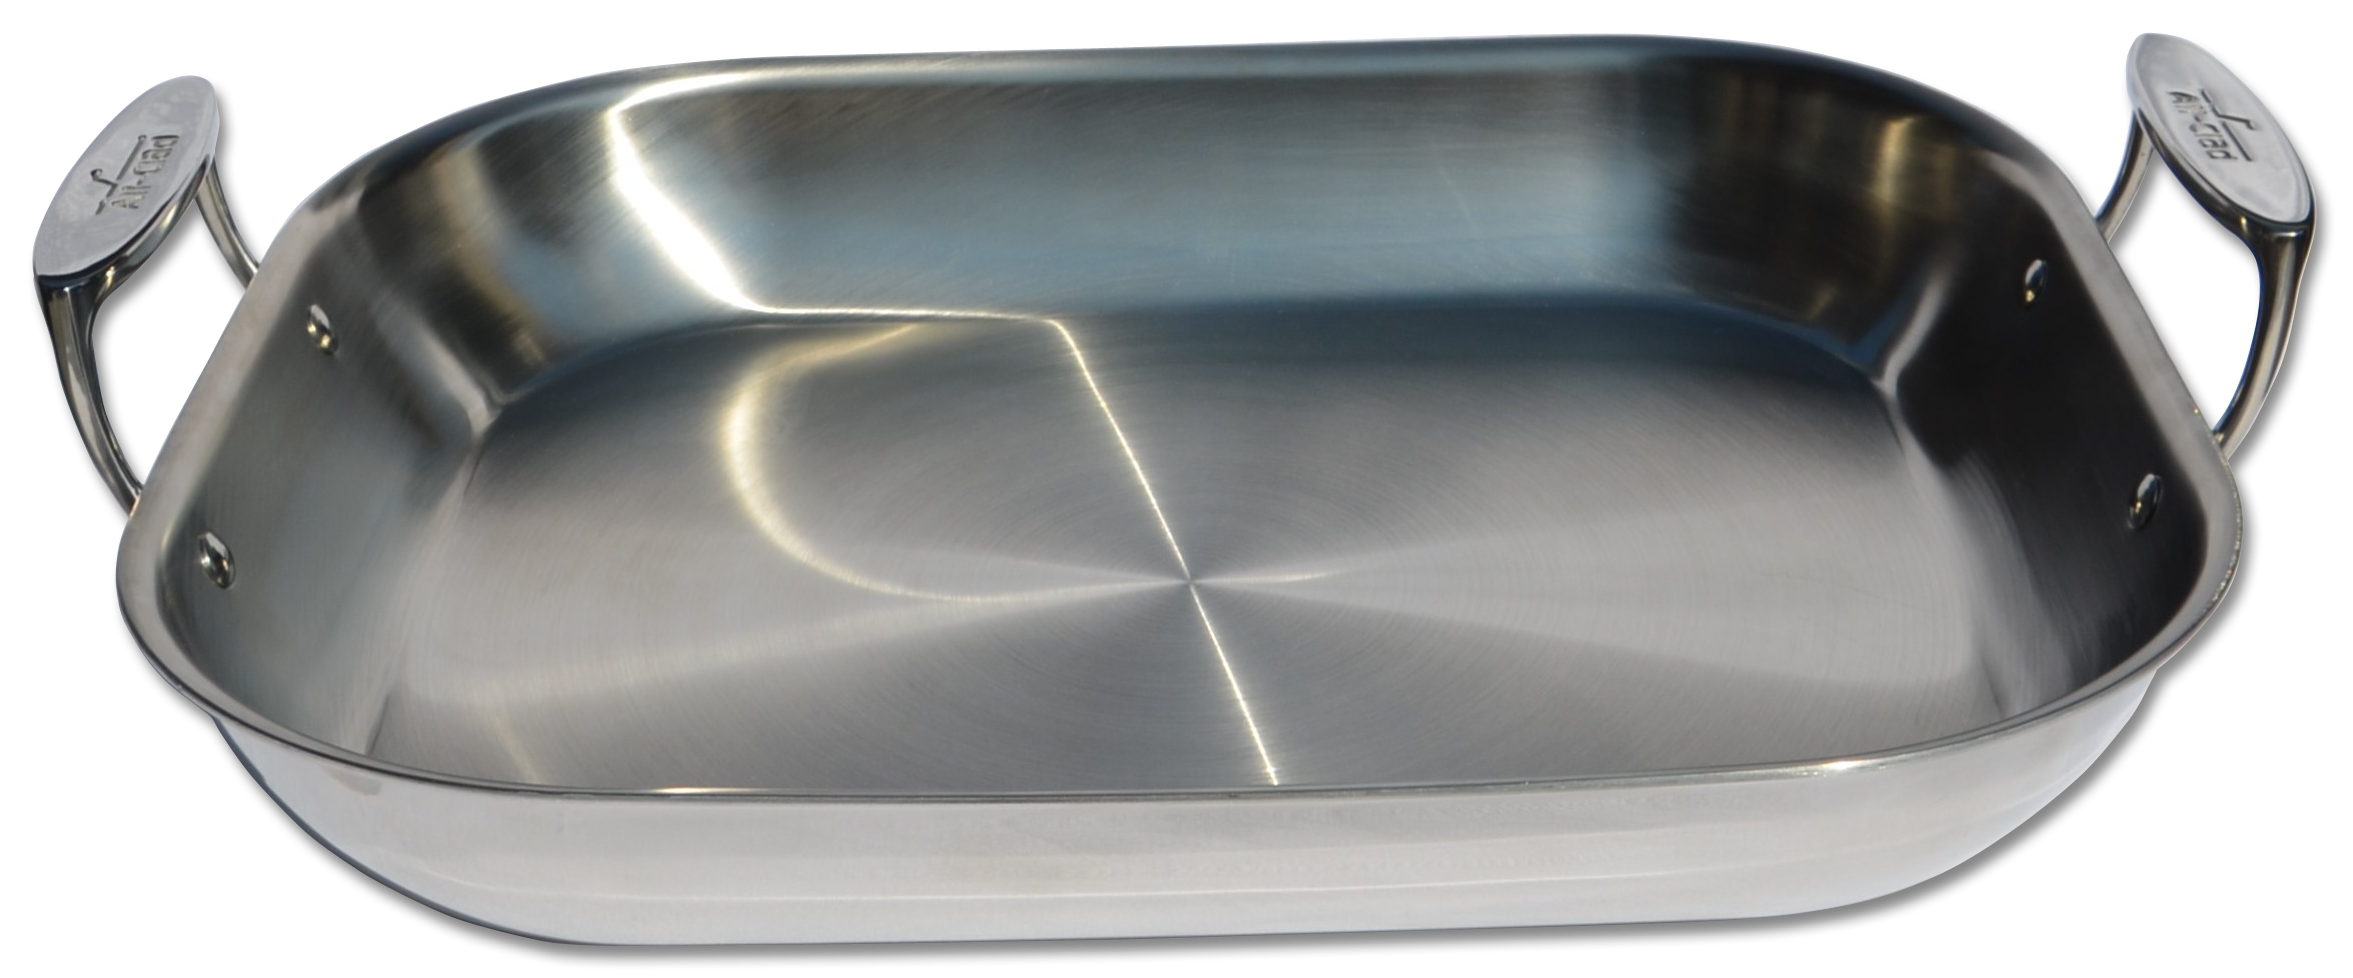 ALL-CLAD STAINLESS STEEL FLARED ROASTING PAN